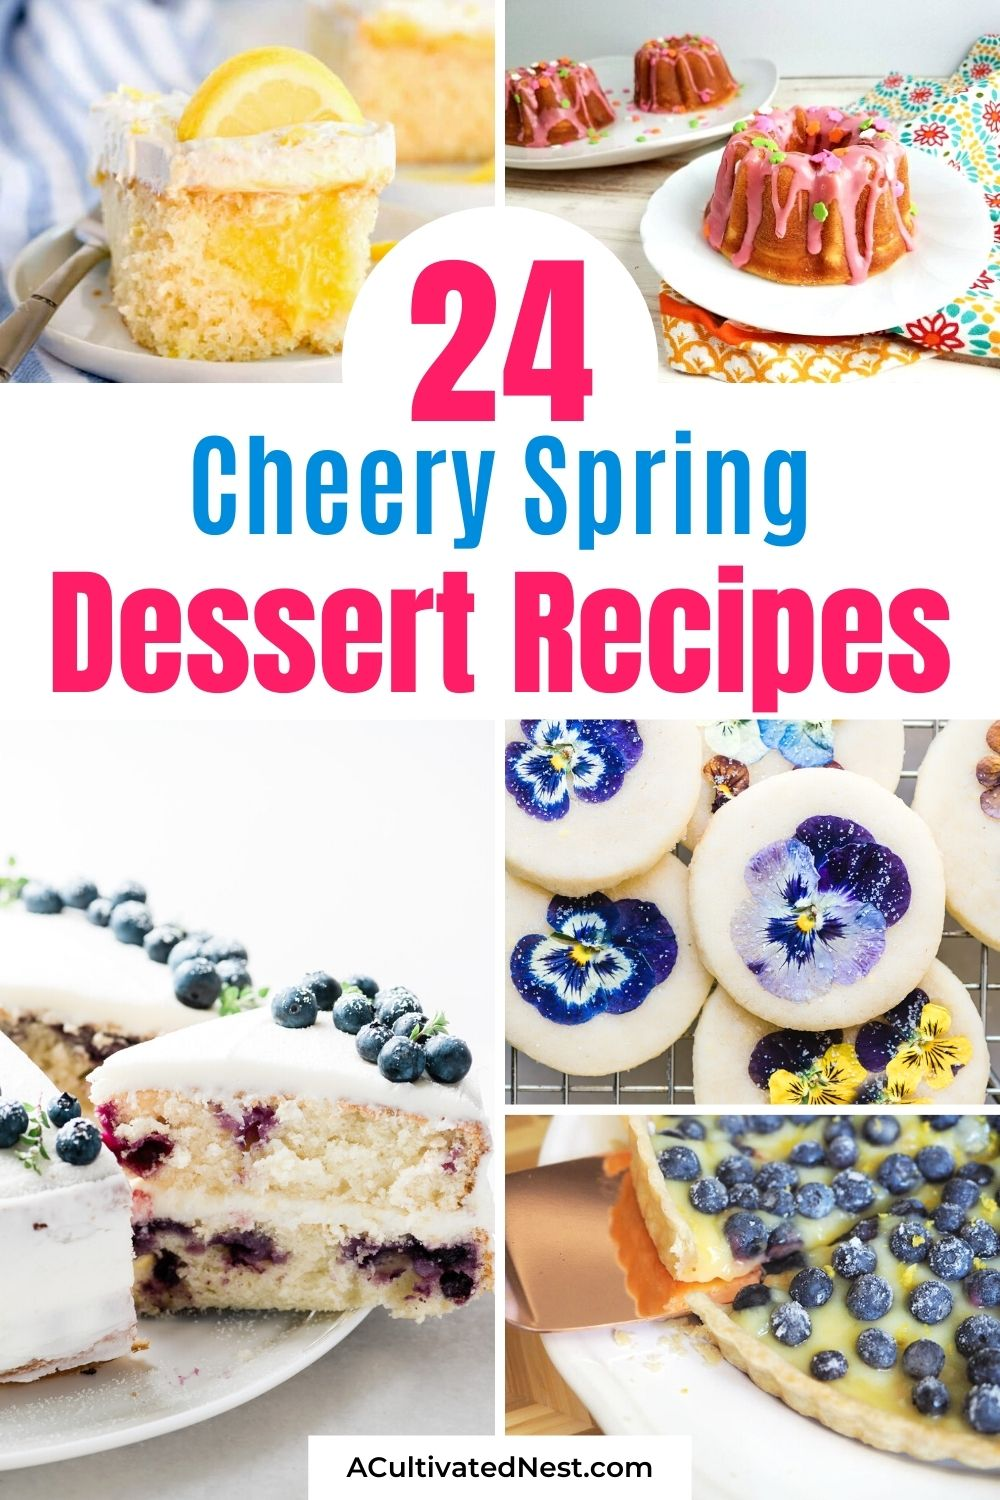 24 Cheery Spring Dessert Recipes- For something bright, cheery, and delicious to celebrate the start of spring, you should make these cheery spring dessert recipes! | spring recipes, brightly colored desserts, #springBaking #springDesserts #dessertRecipes #desserts #ACultivatedNest